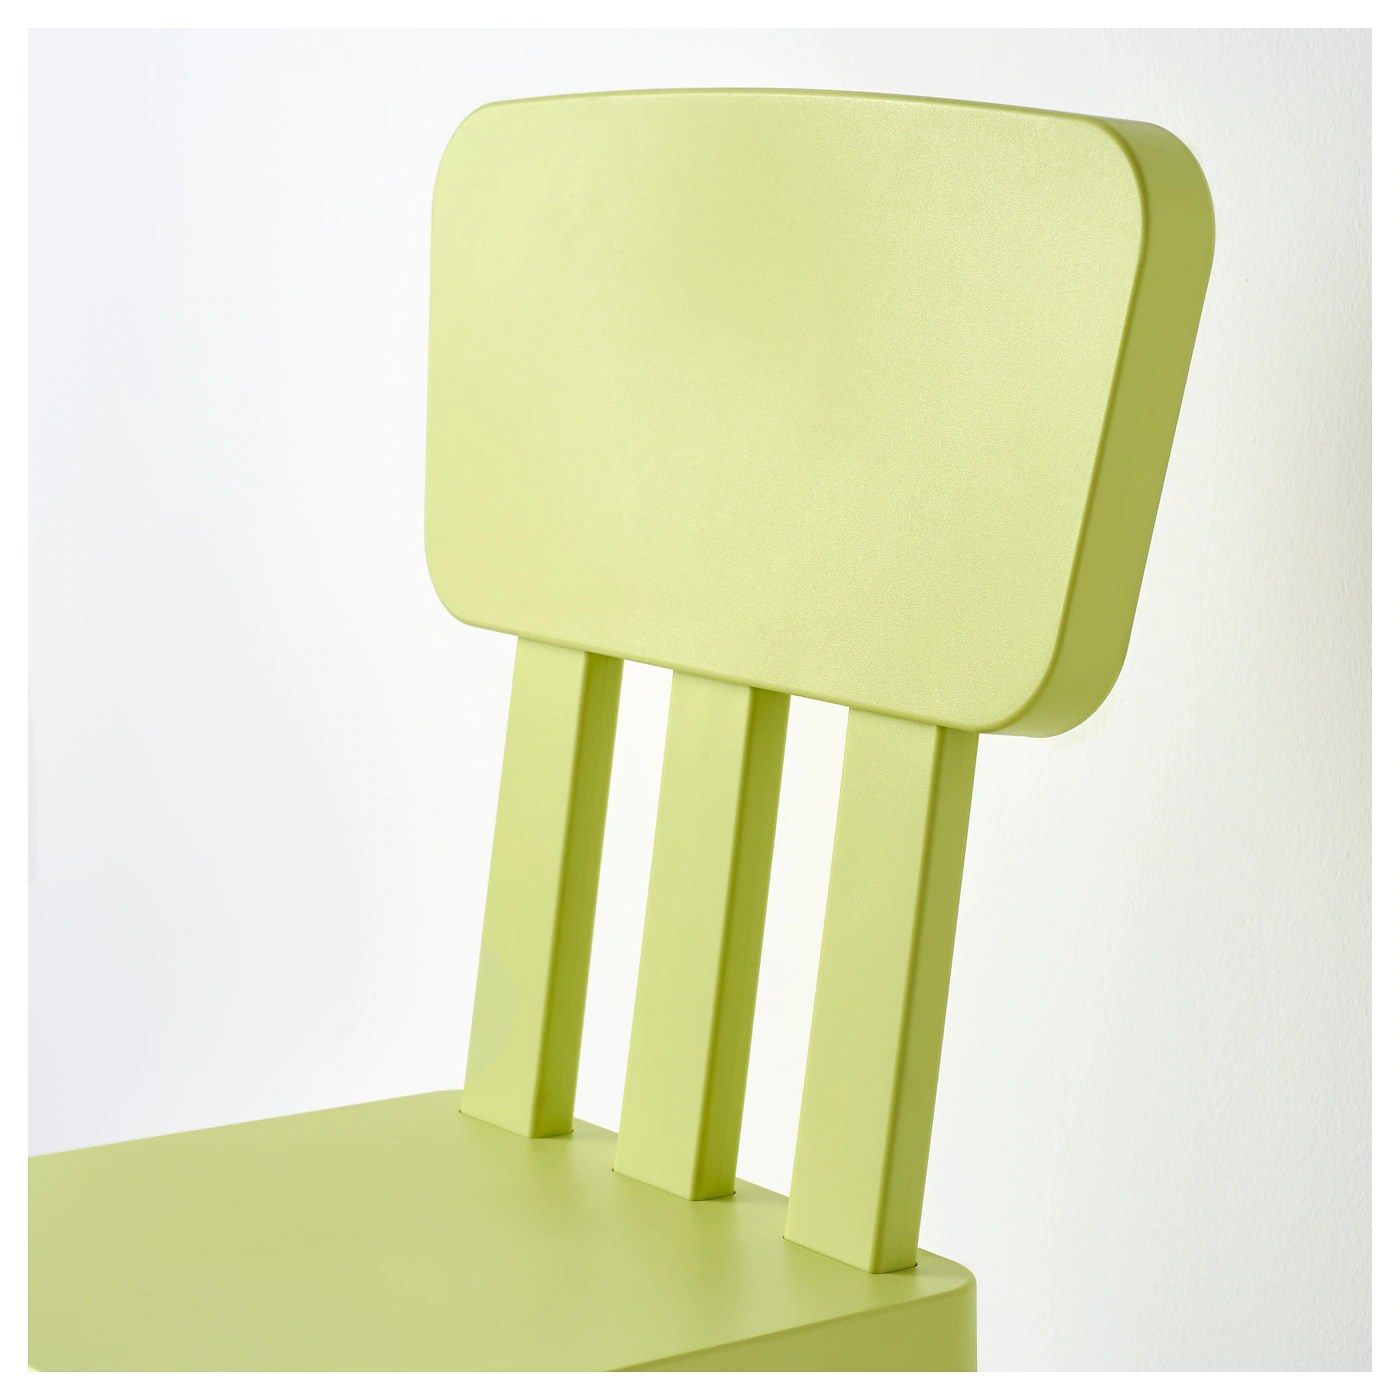 ikea childrens plastic table and chairs reupholster chair cushion with piping mammut children 39s in outdoor light green